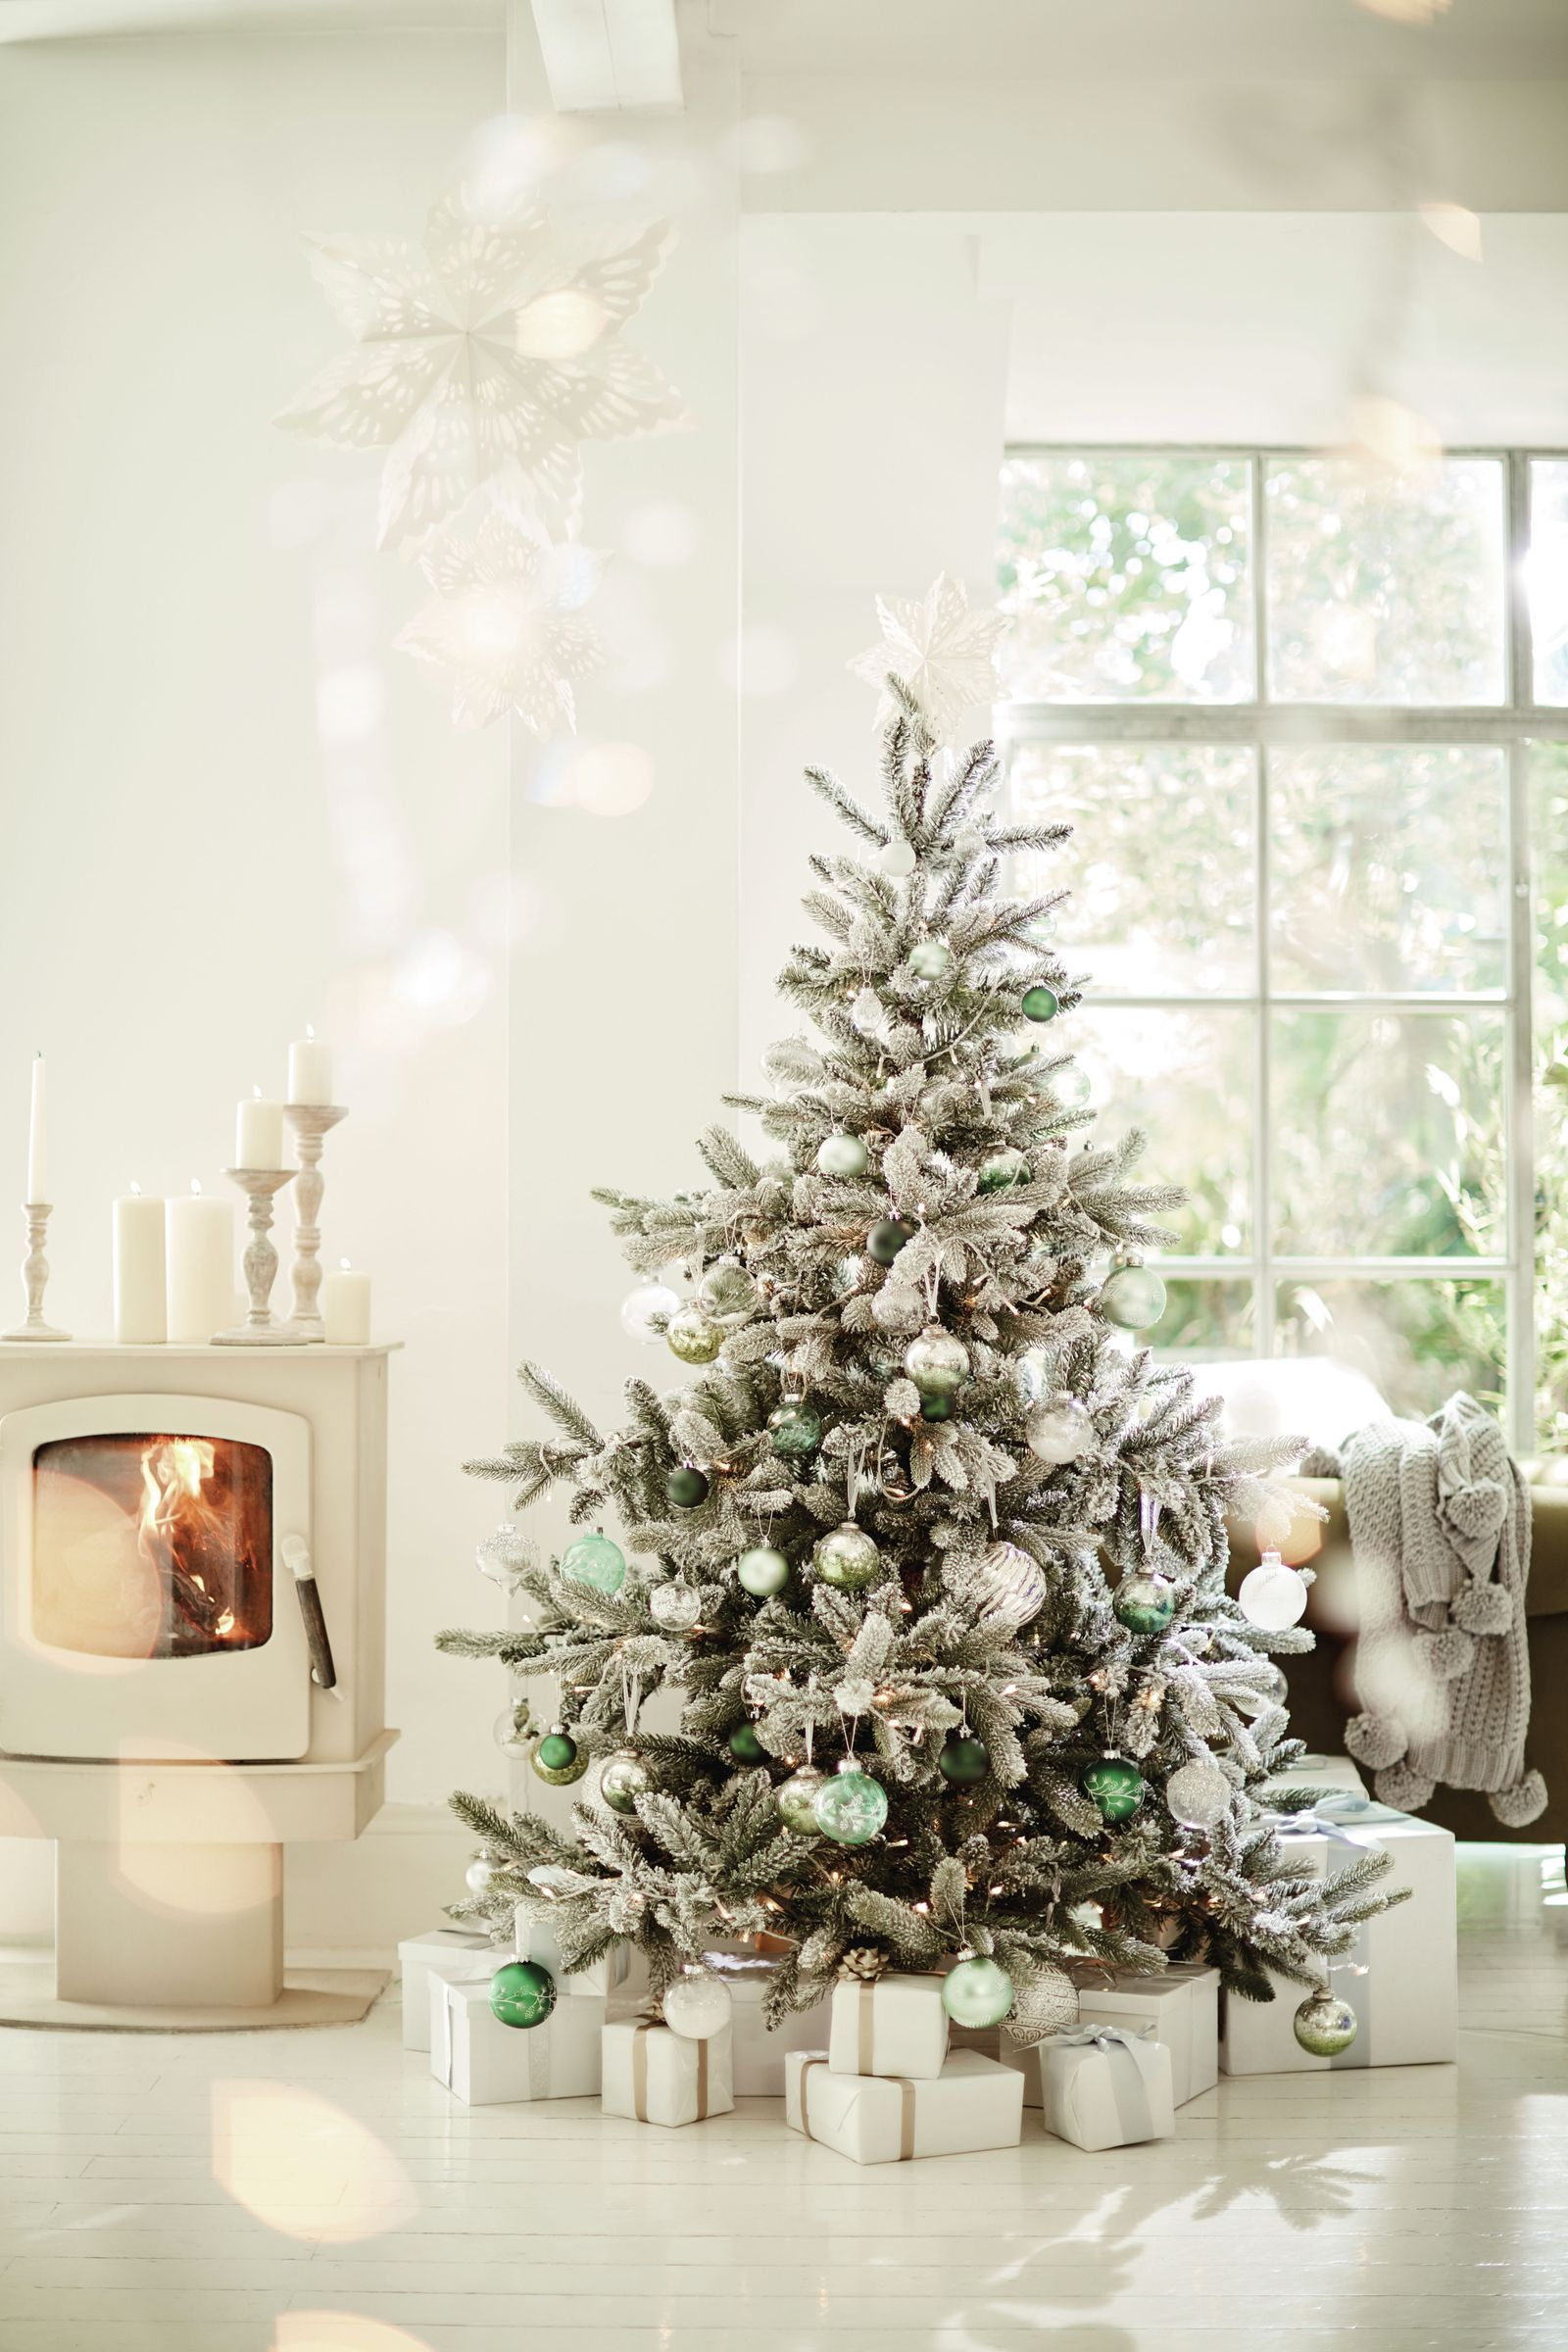 14 Quotes And Festive Room Schemes That Will Make You Feel All Christmassy Inside Christmas Decorations Apartment Christmas Decorations For The Home Best Artificial Christmas Trees